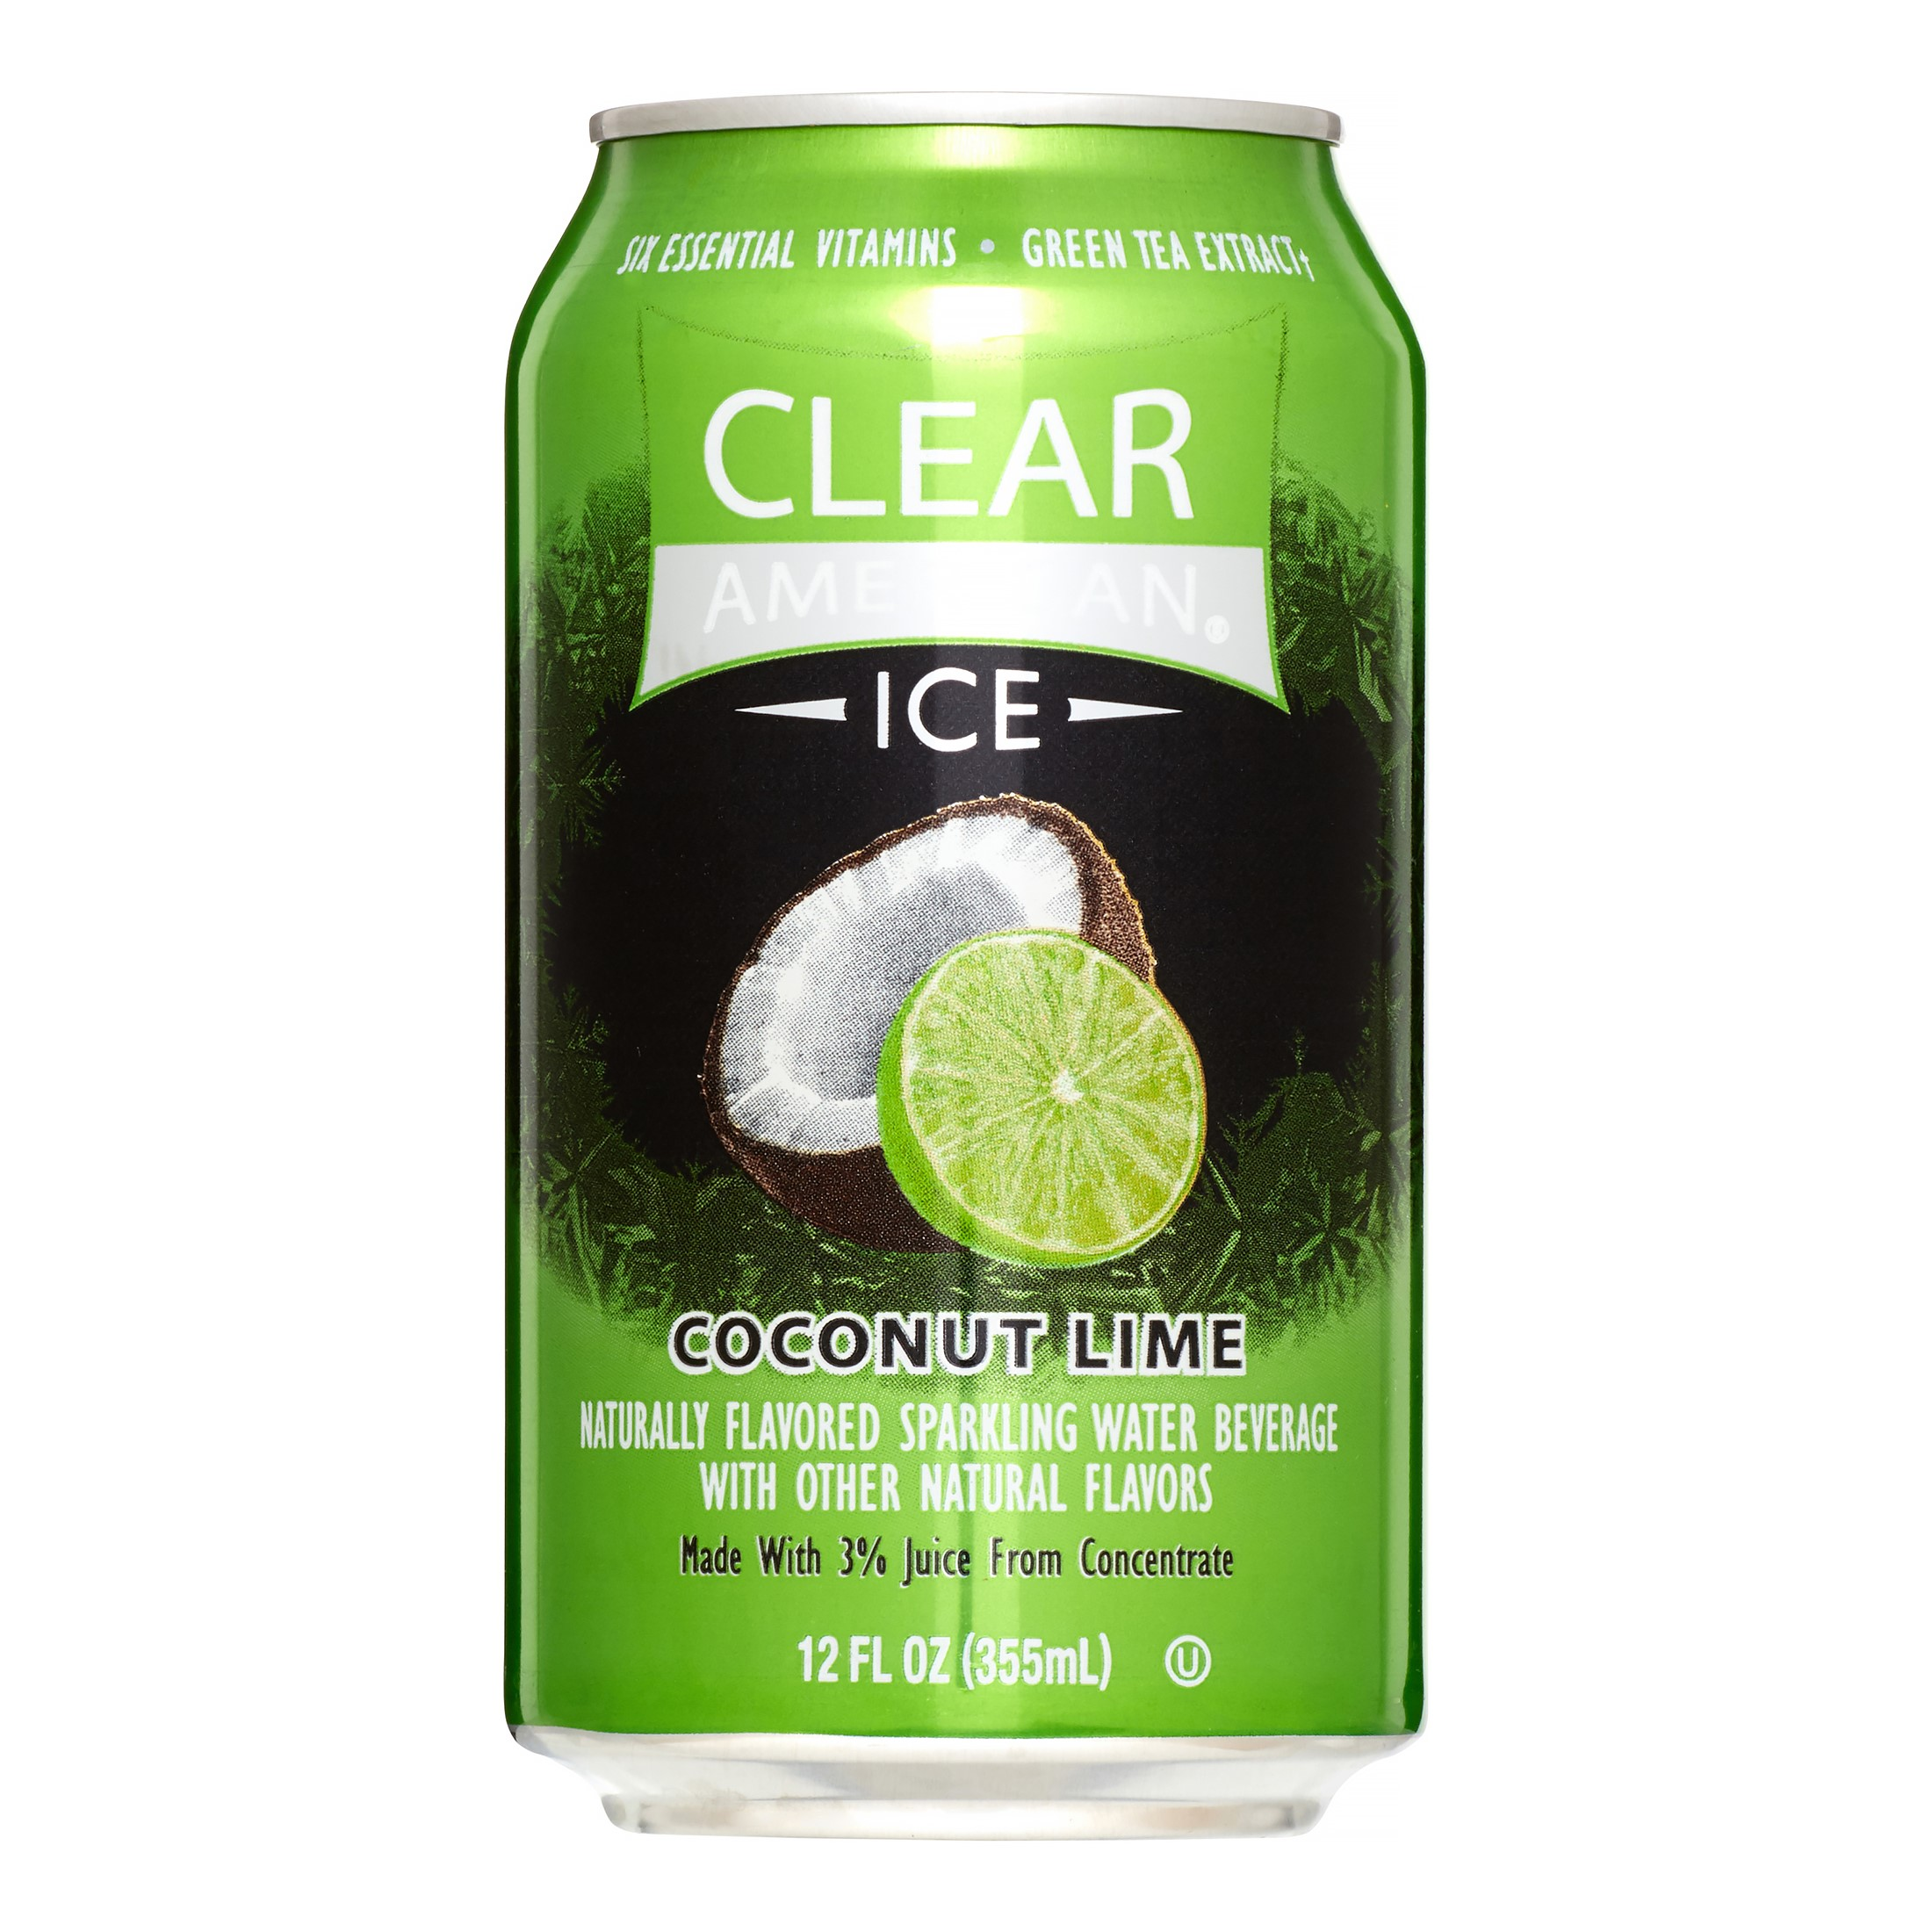 Clear American Ice Coconut Lime Flavored Sparkling Water, 12 fl oz, 8 pack by Clear American